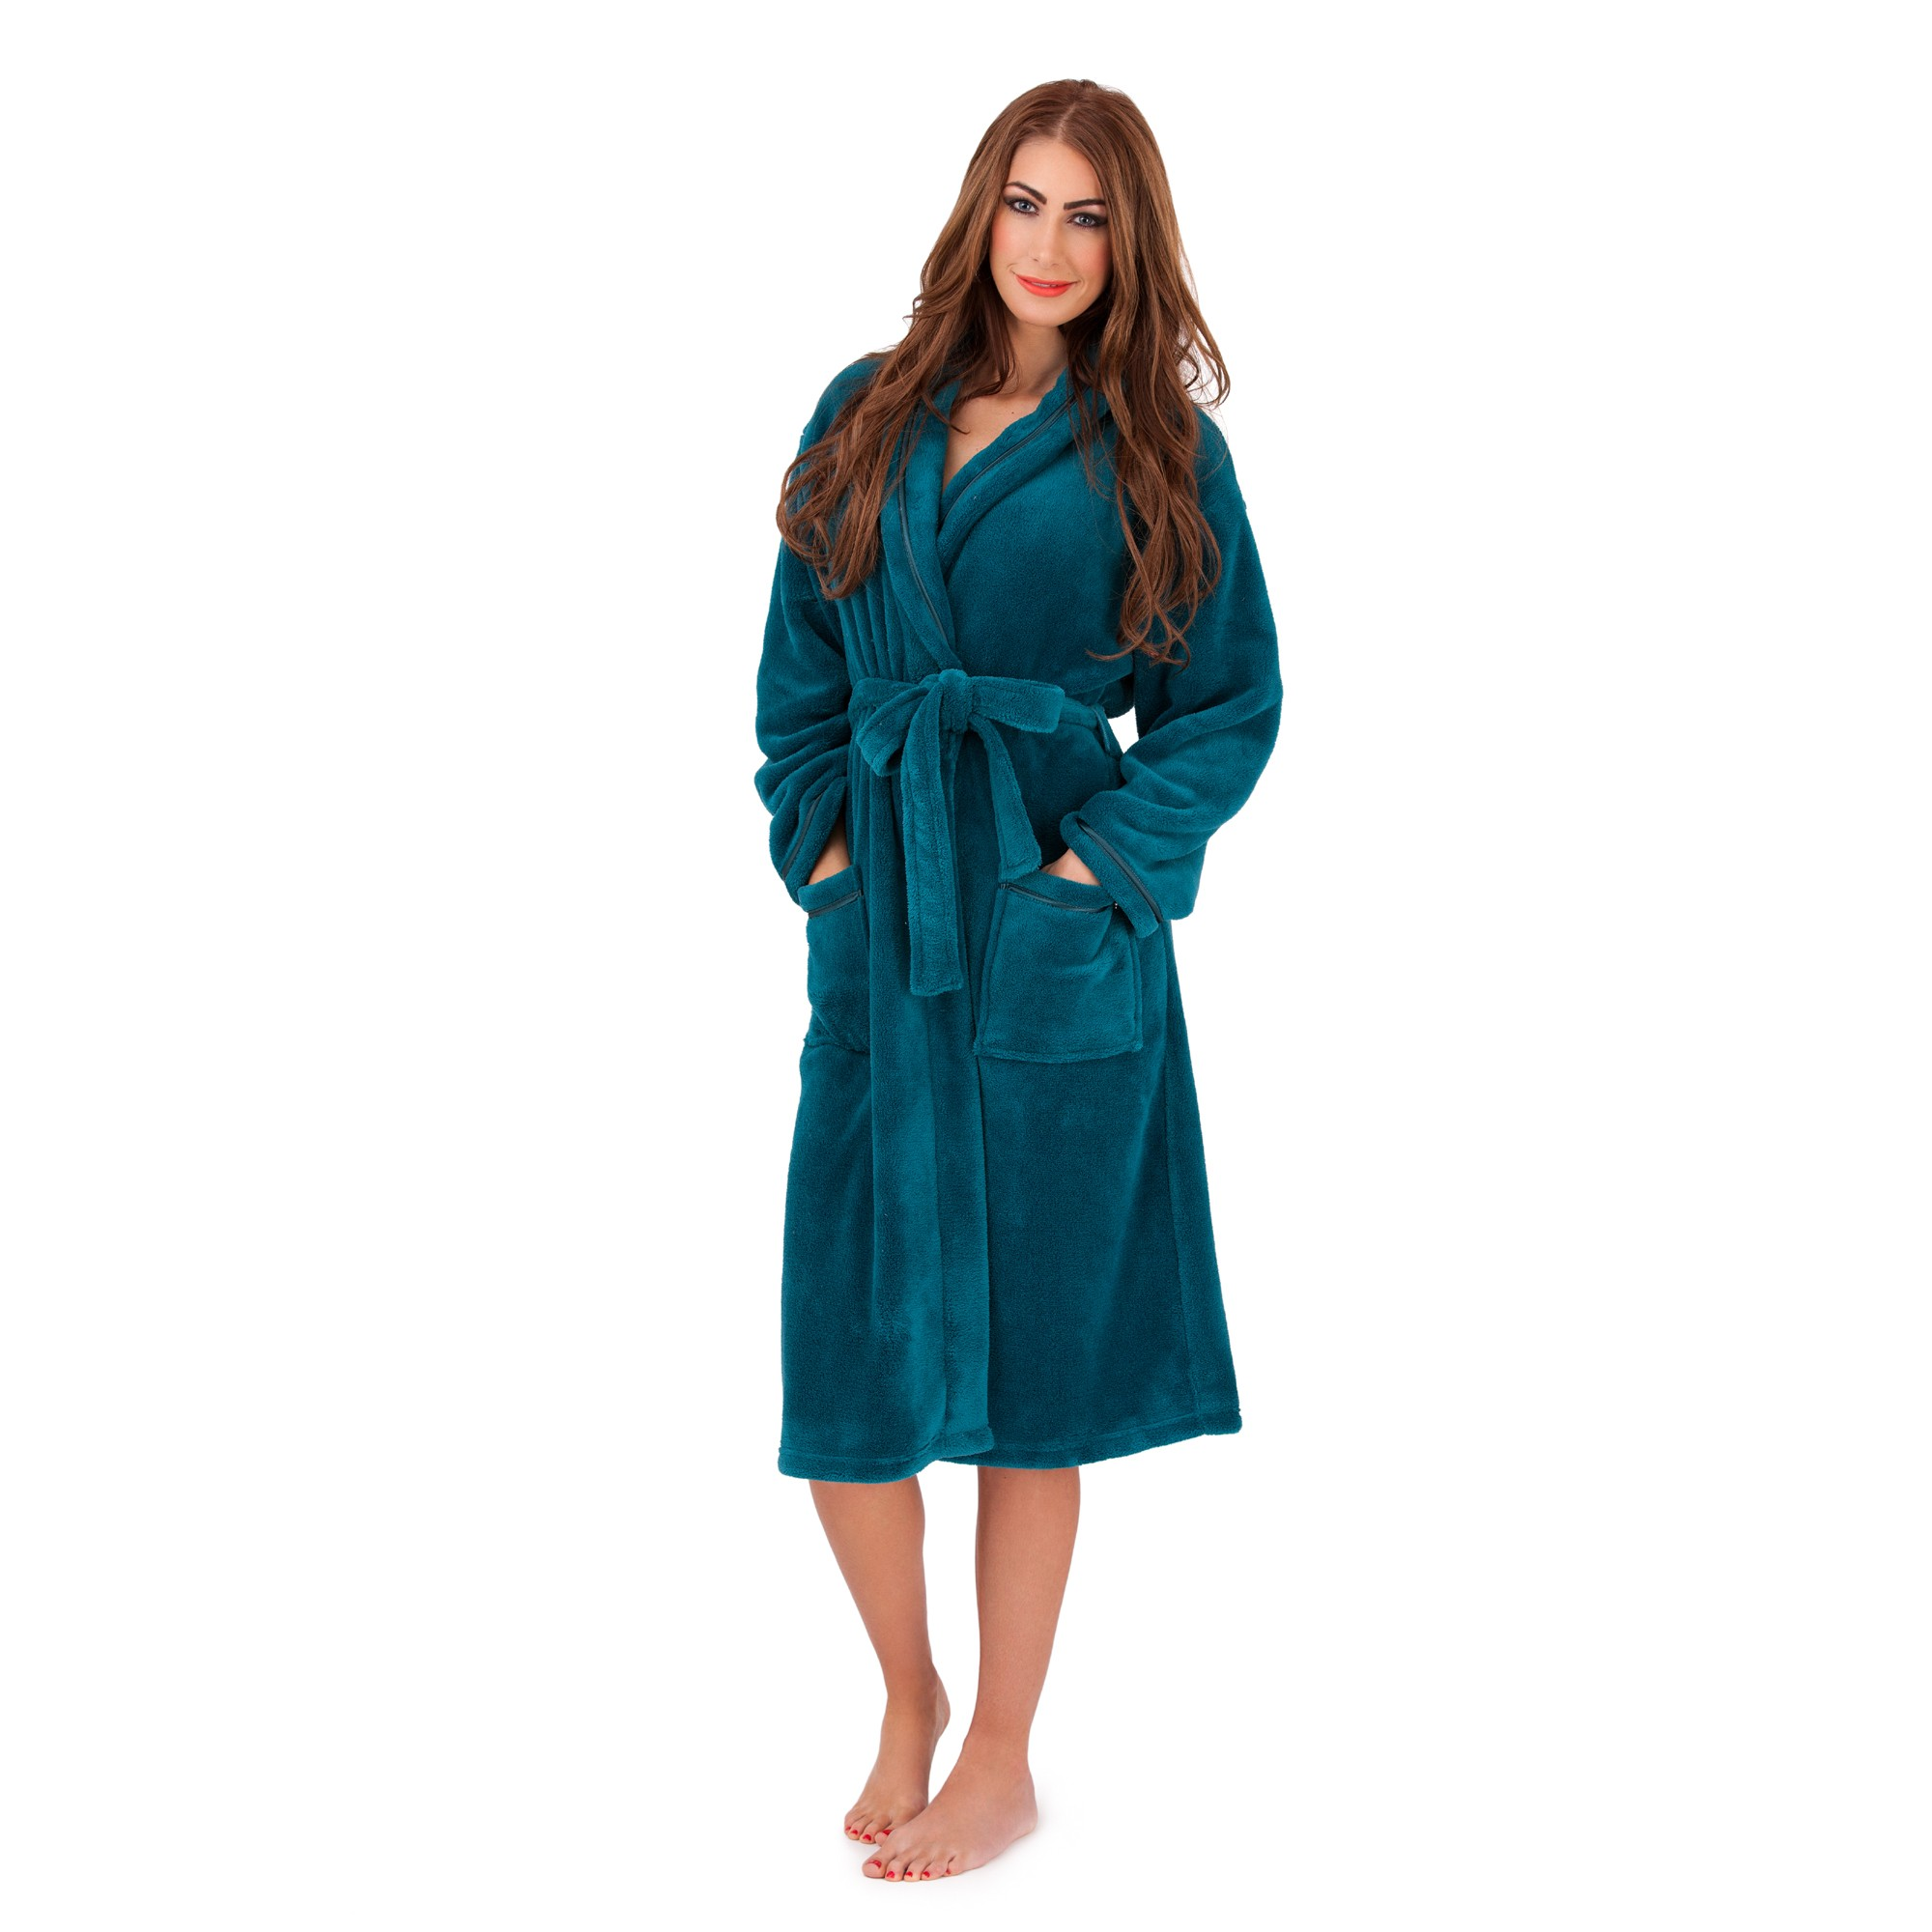 Ladies Super Soft Fleece Dressing Gown - Teal | Free UK Delivery ...